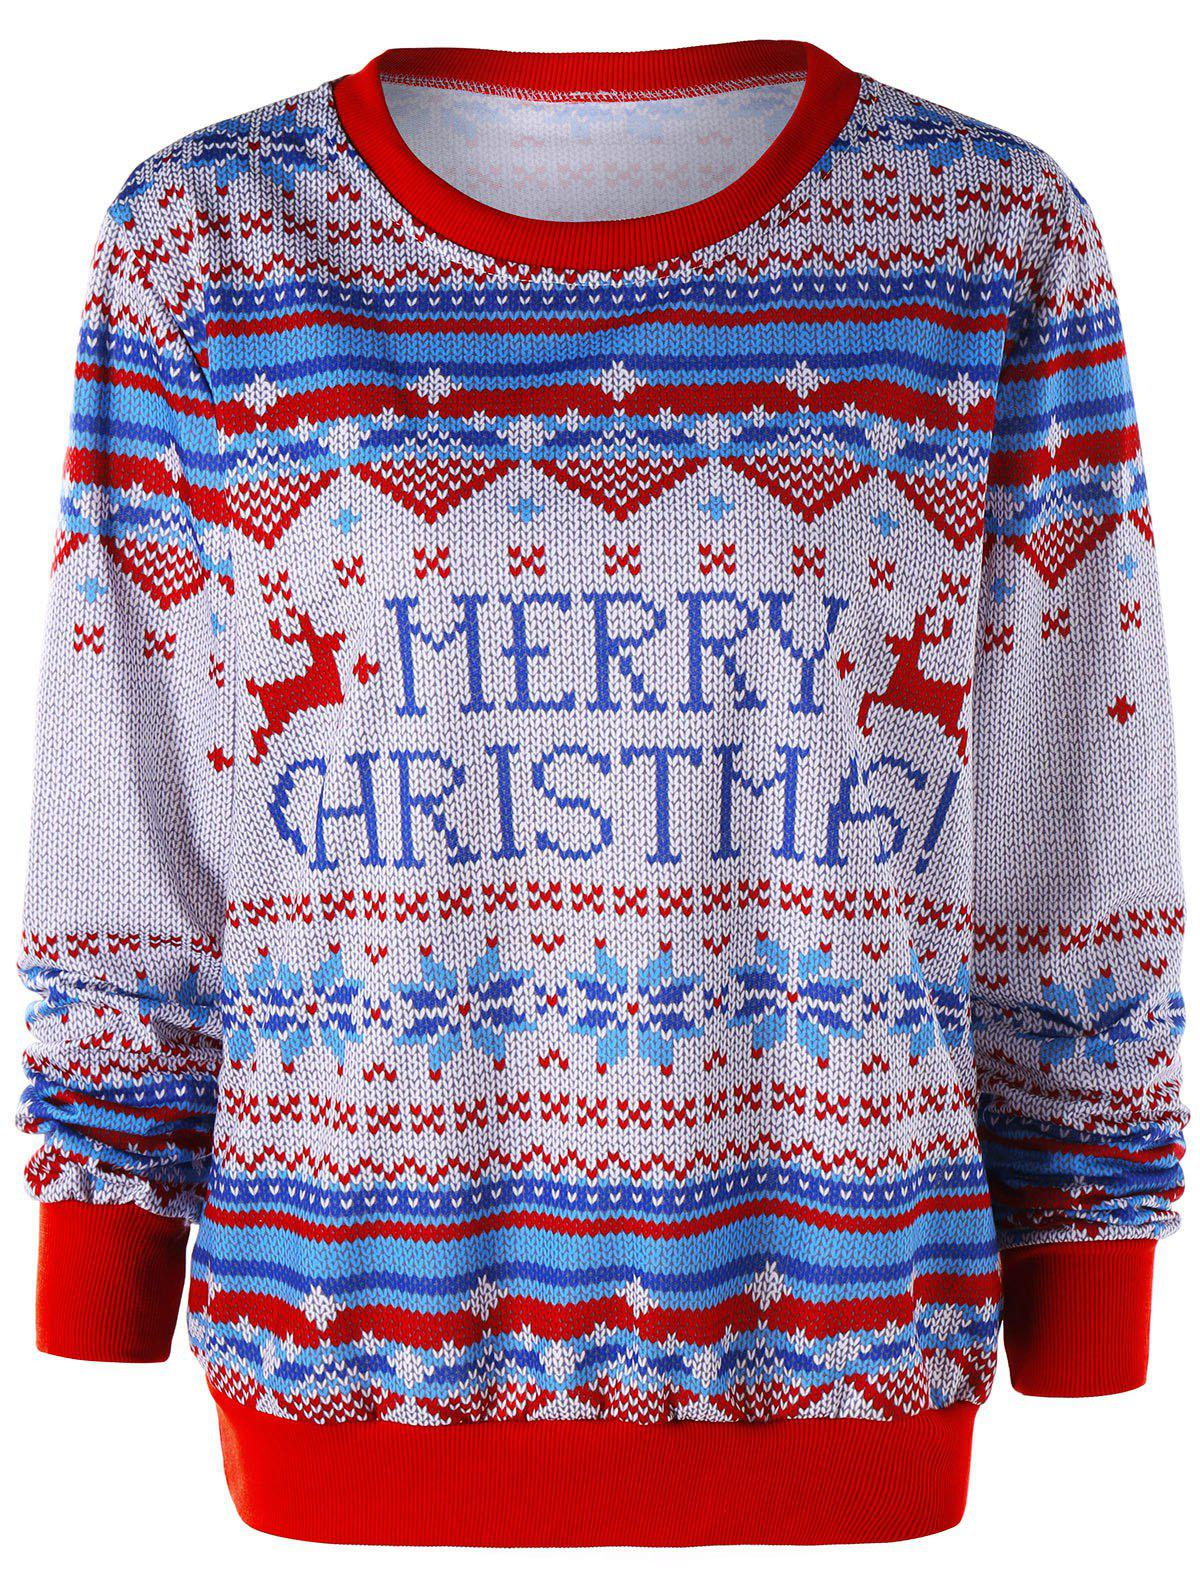 Sweat-shirt imprimé joyeux Noël - multicolore M